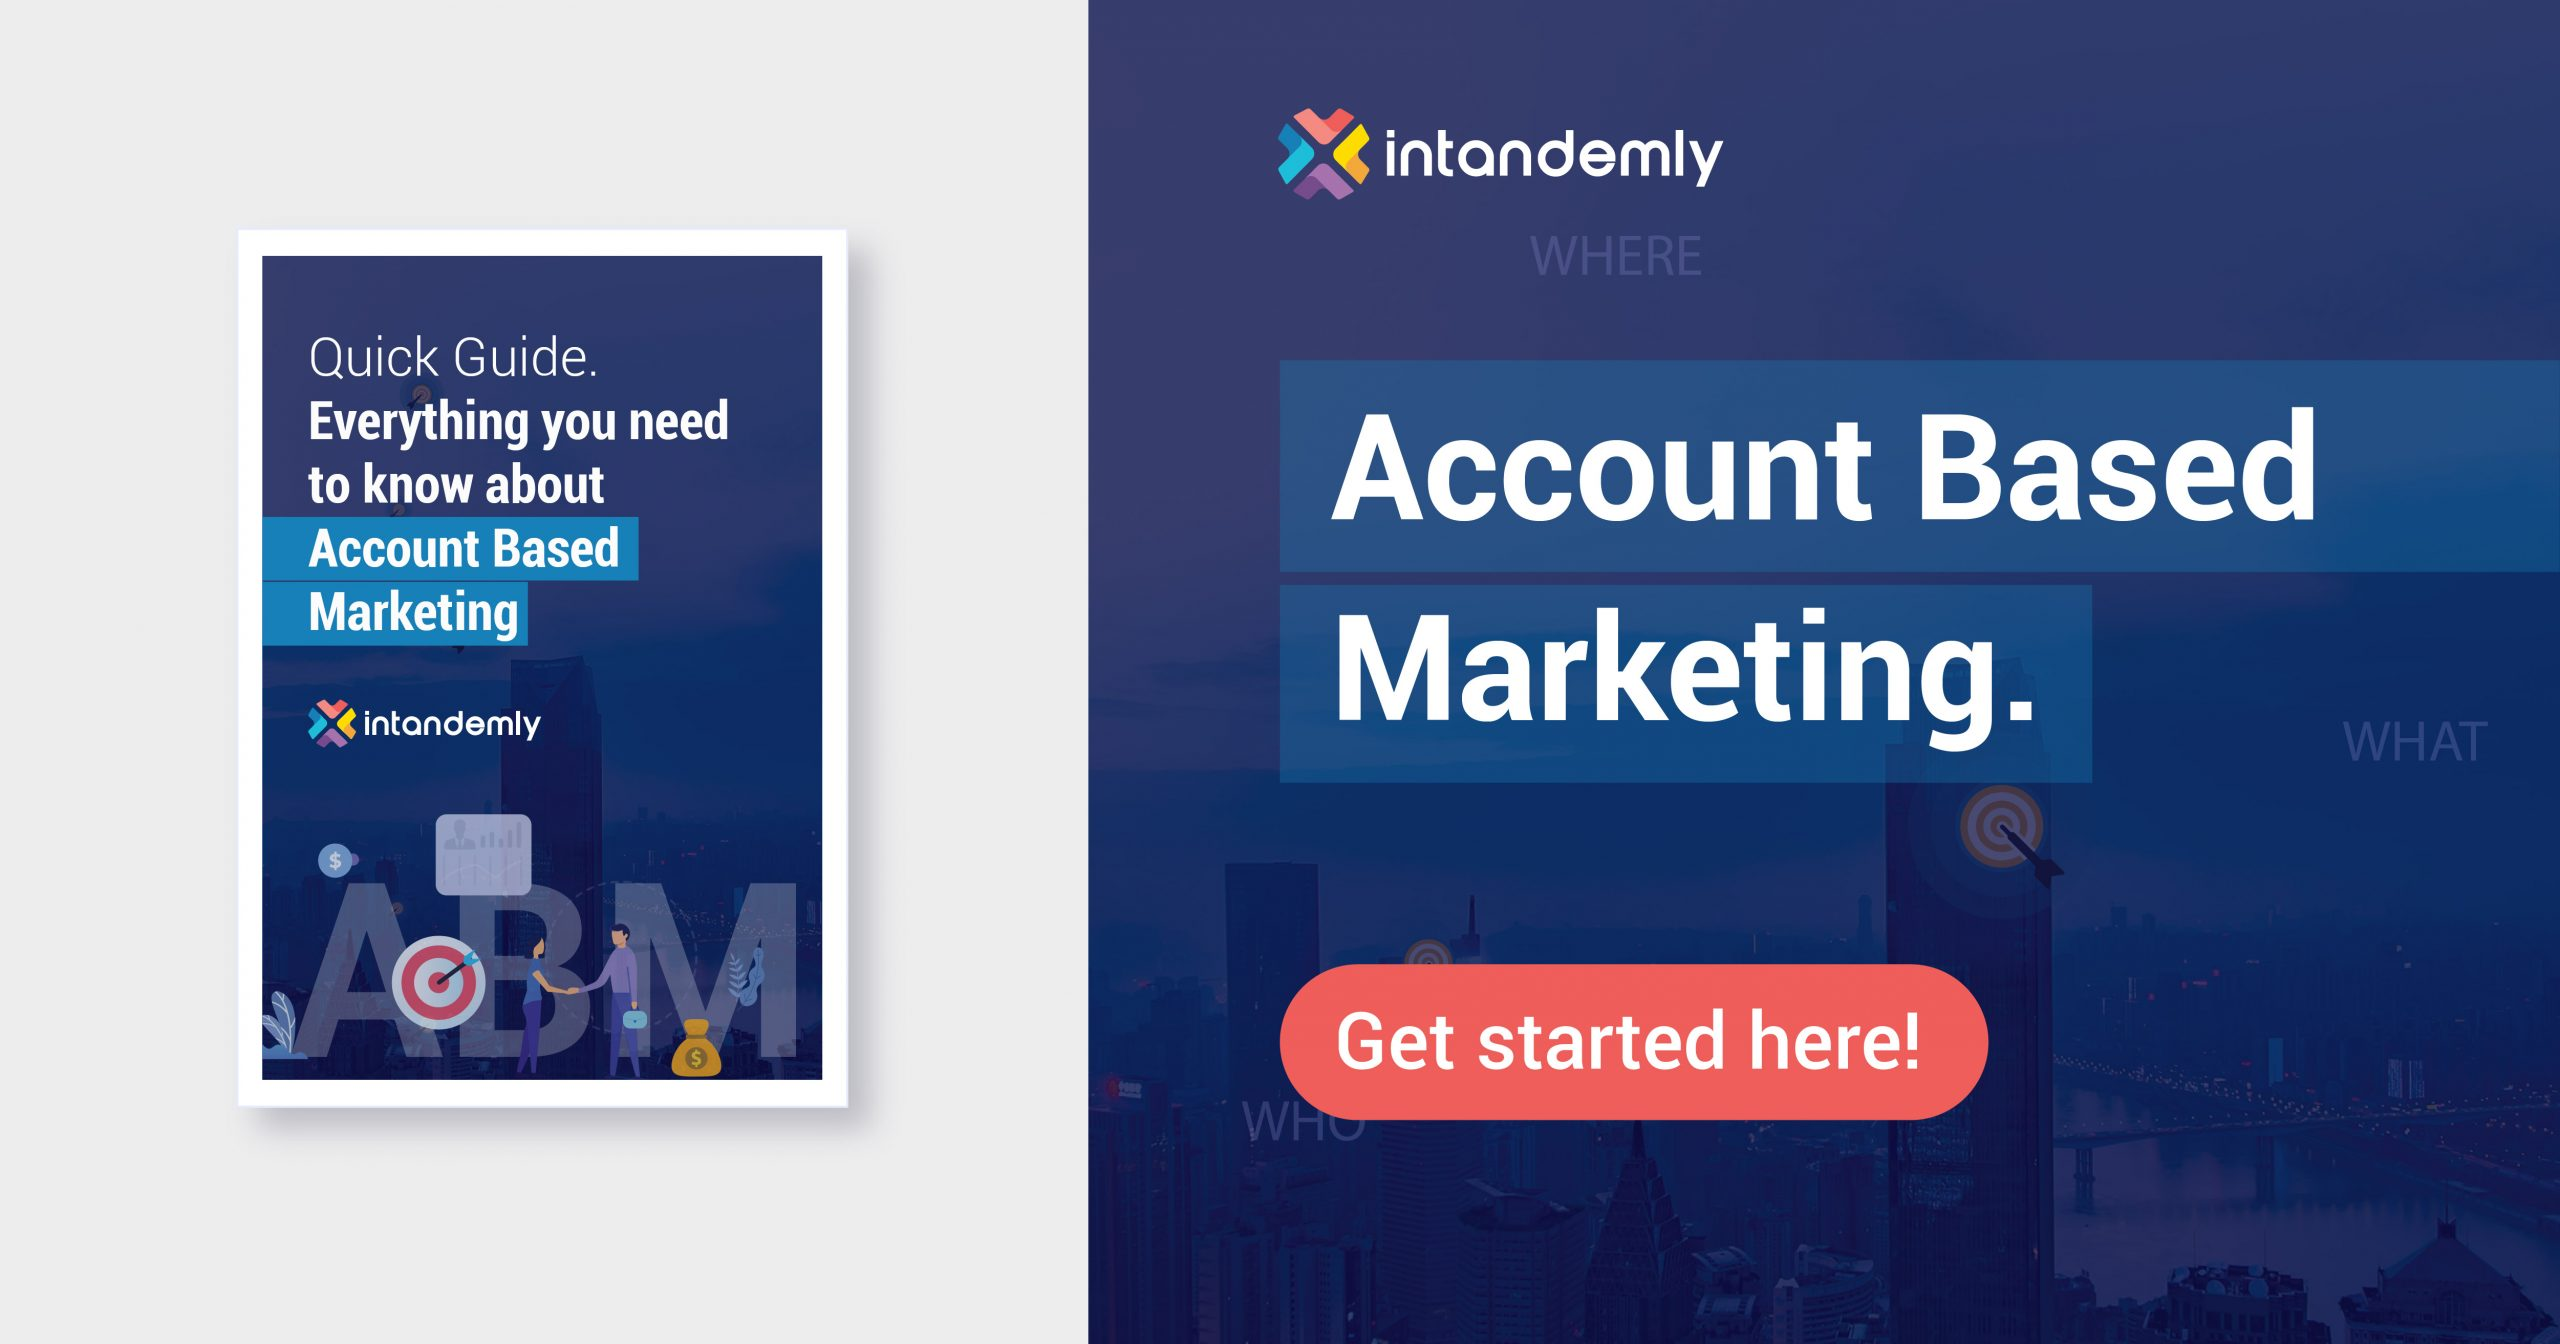 Account Based Marketing with Intandemly. Start Free for 7 Days